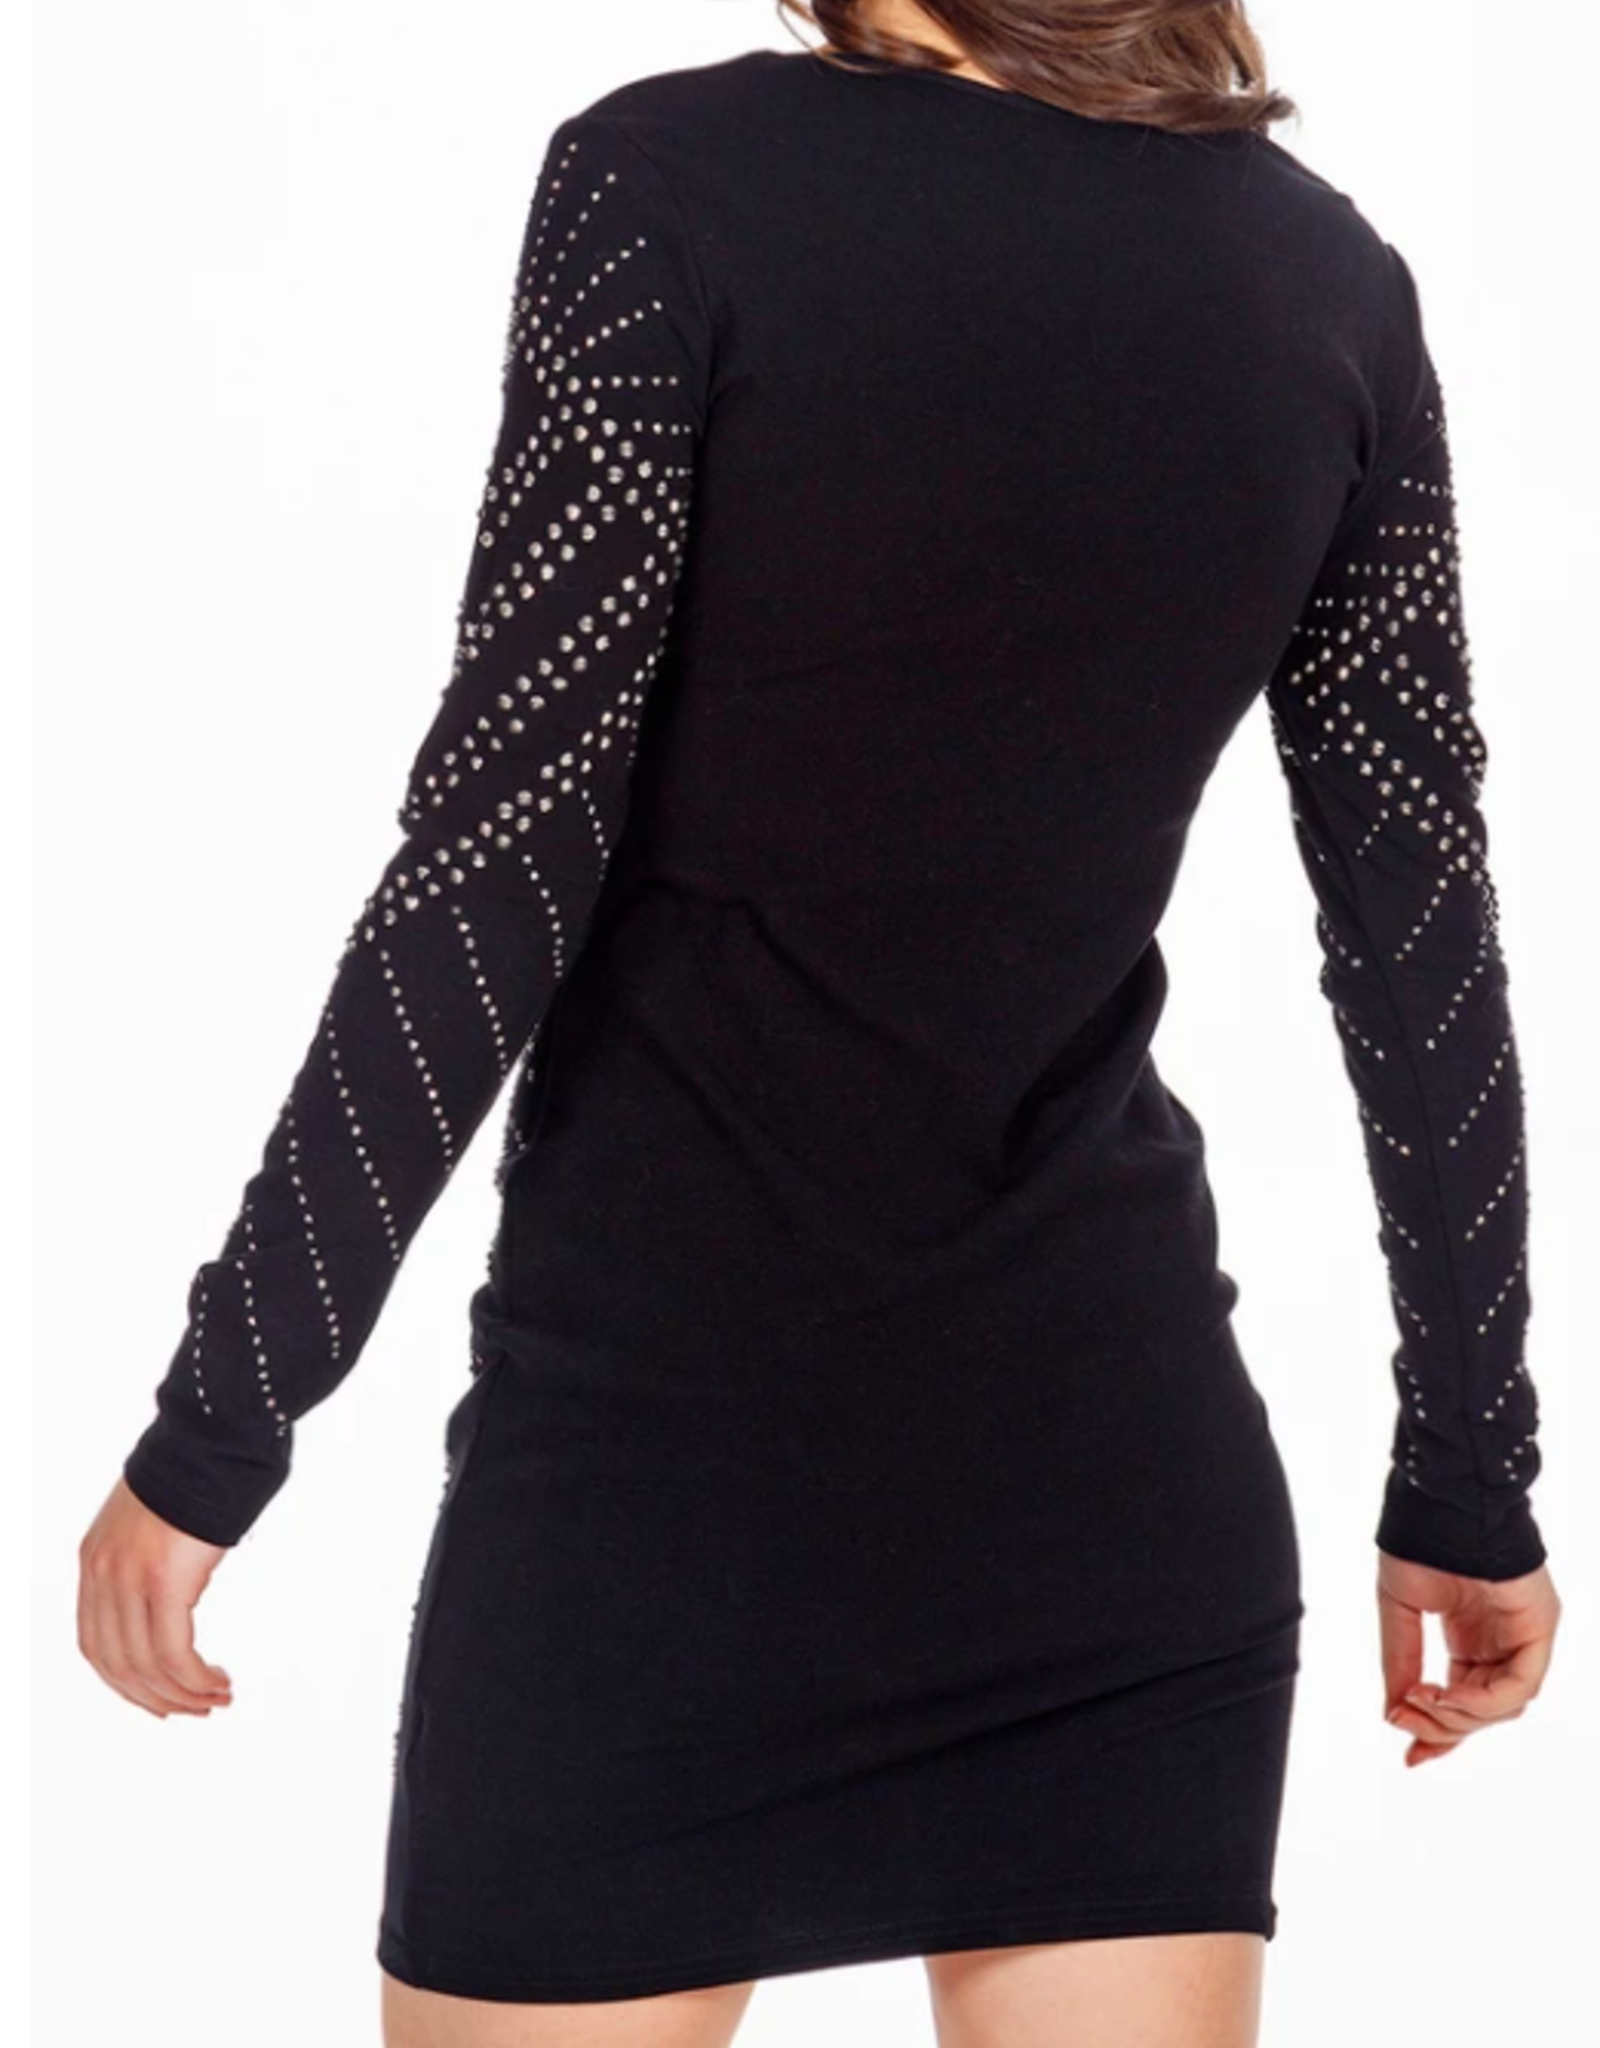 Nova London embellished long sleeve dress